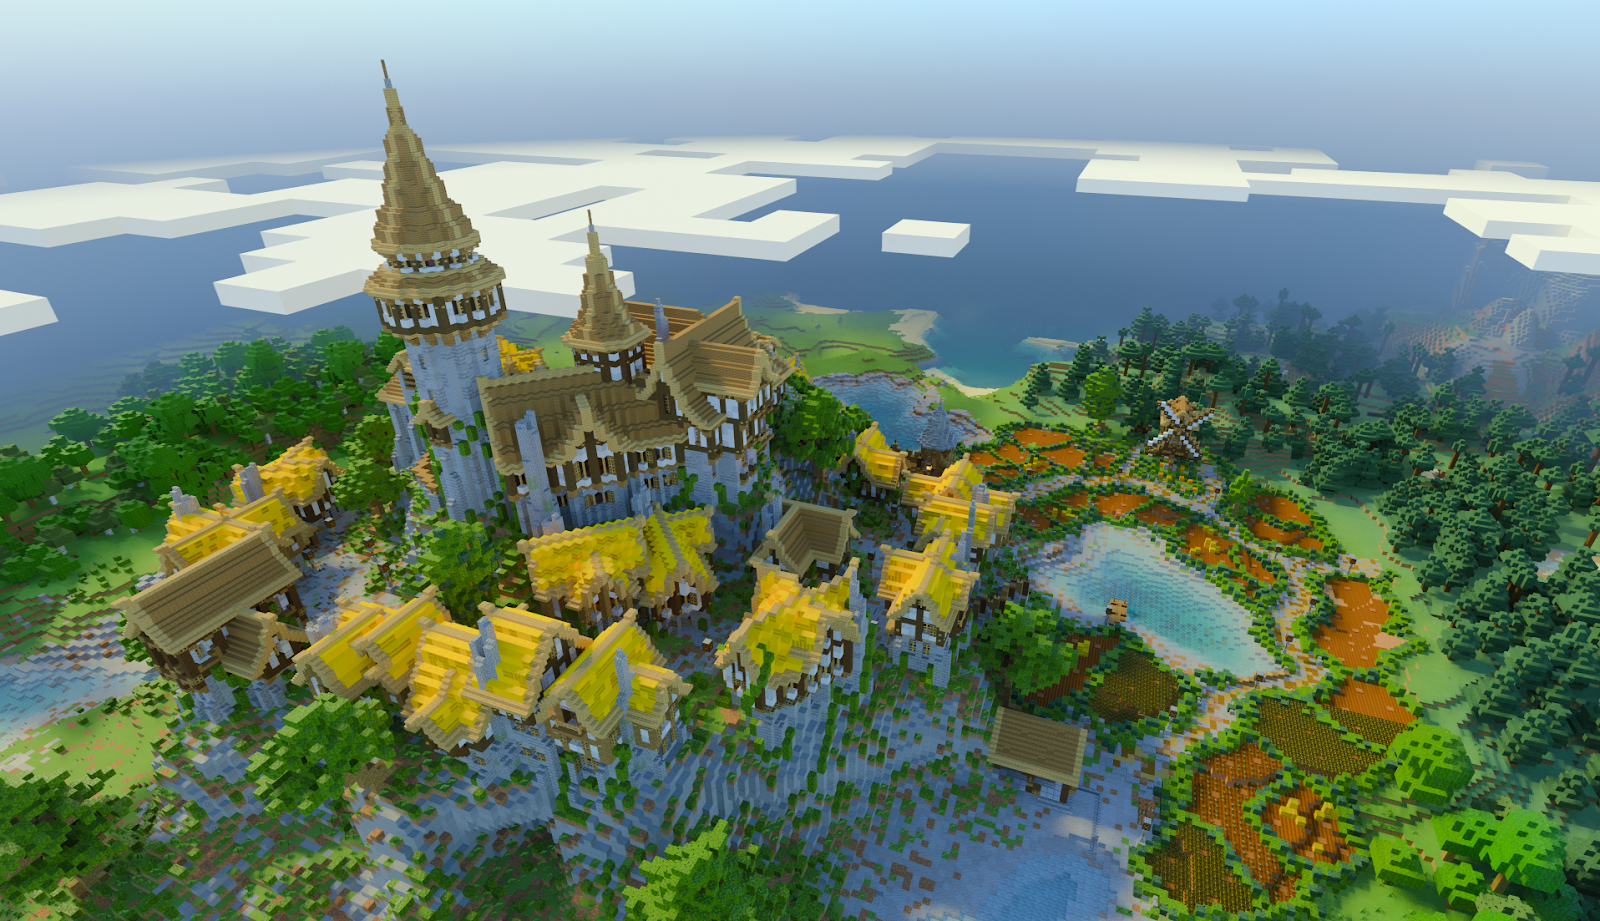 Players can make some astonishing creations in Minecraft. Depicted is a medieval castle on a mountain, surrounded by houses and farmland